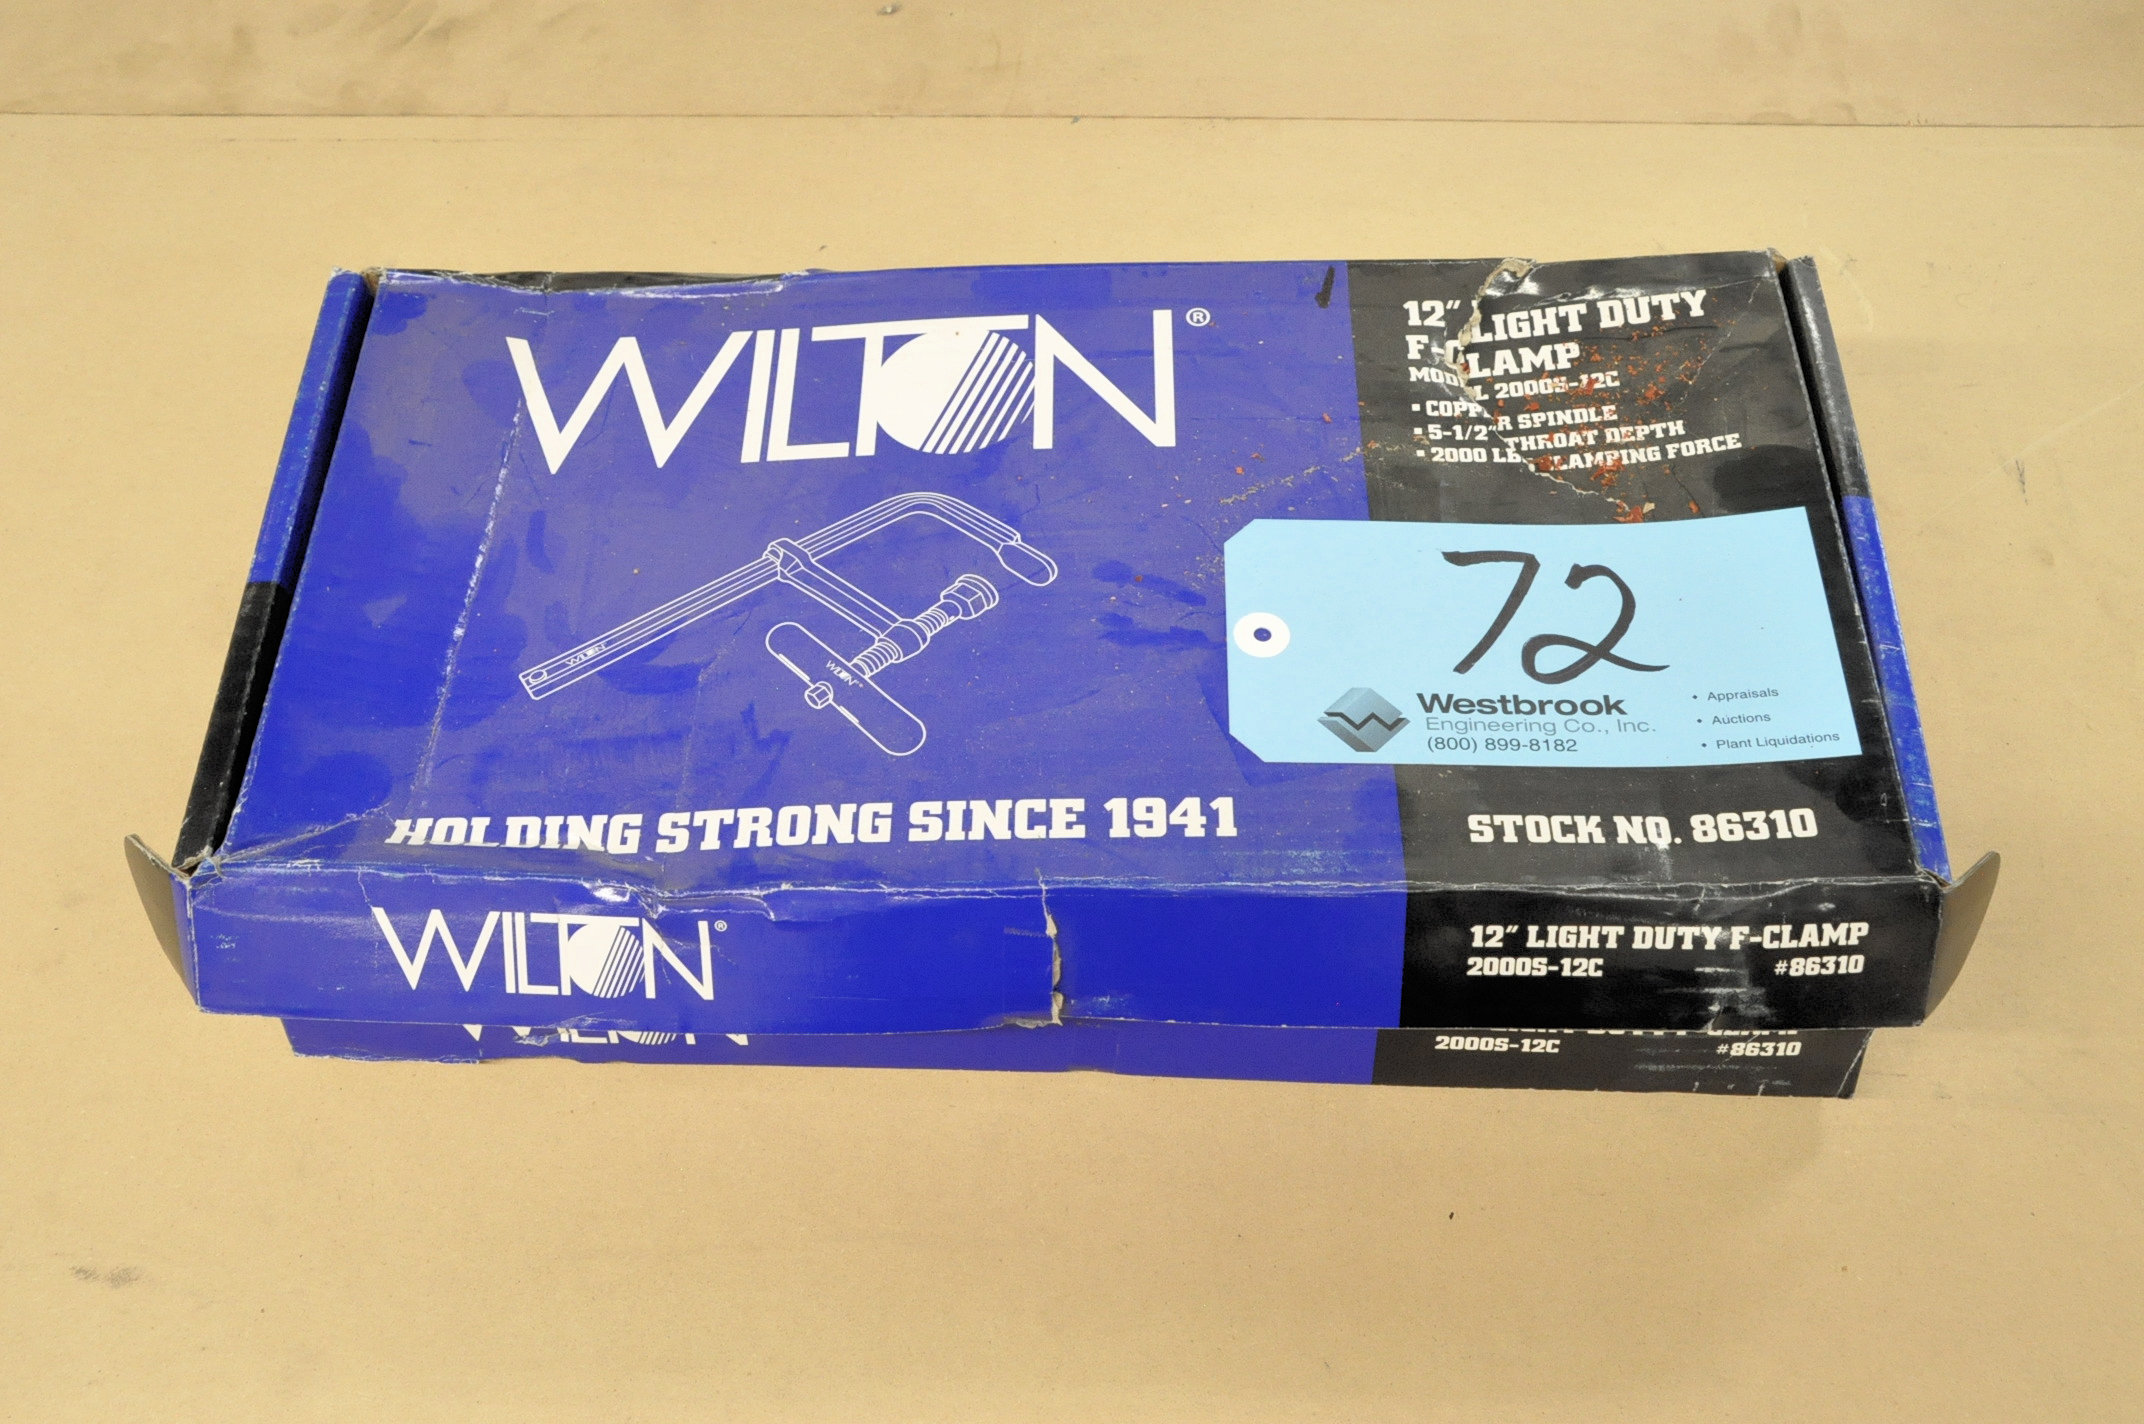 Lot-(2) Wilton No. 2000S-12C, F-Clamps, (Packaged)